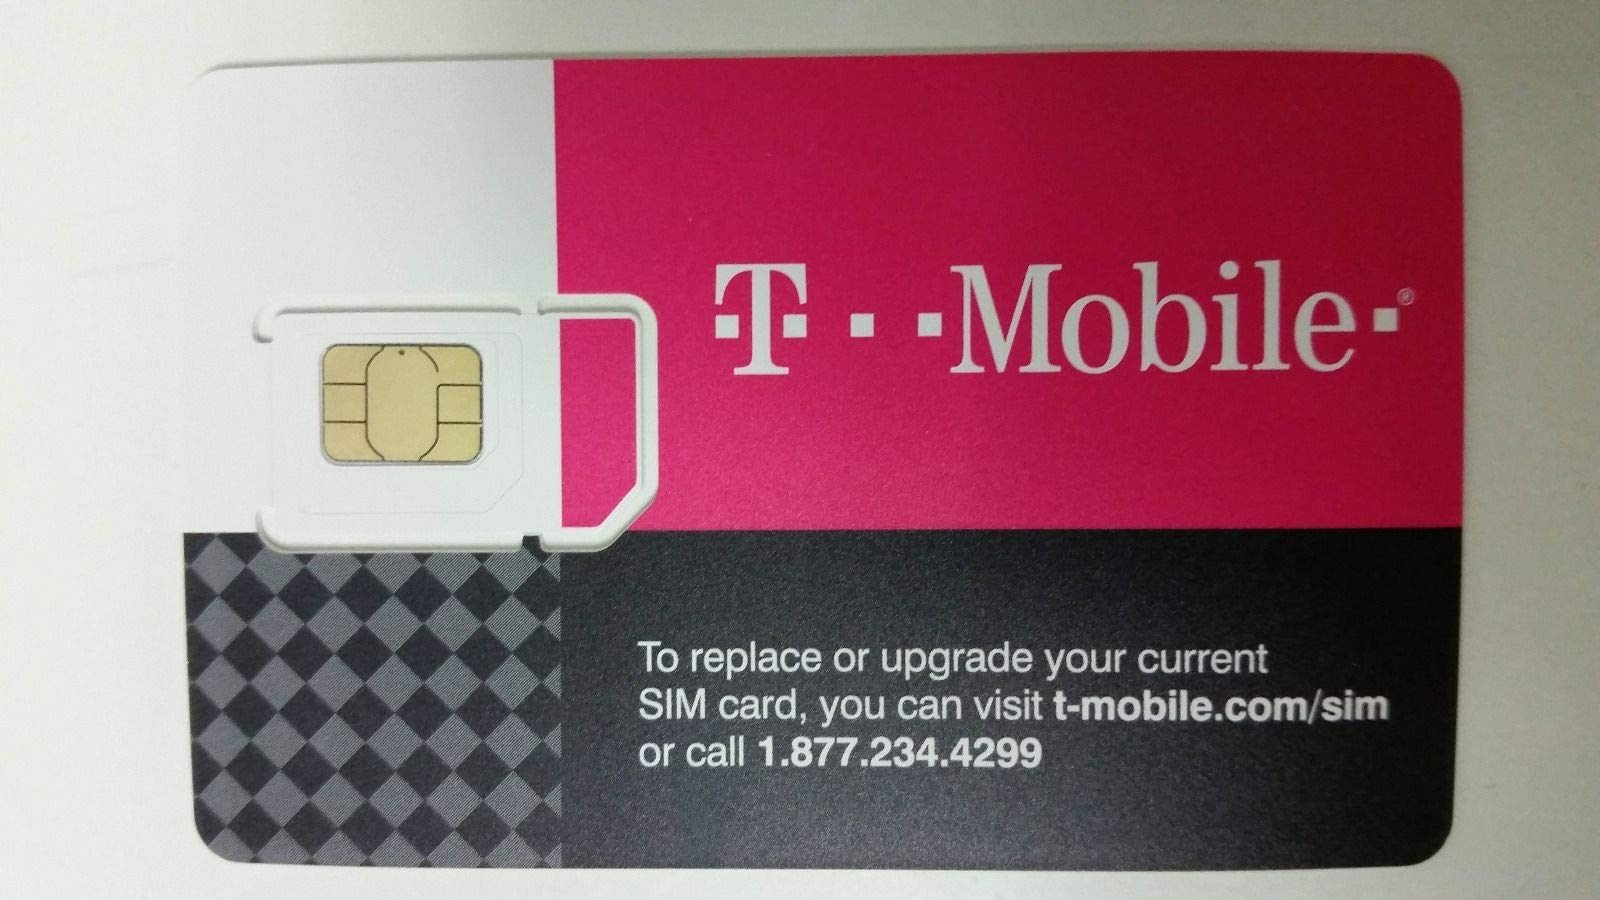 T-Mobile Prepaid SIM Card Unlimited Talk, Text, and Data for 30 days (For use in United States) by T-Mobile